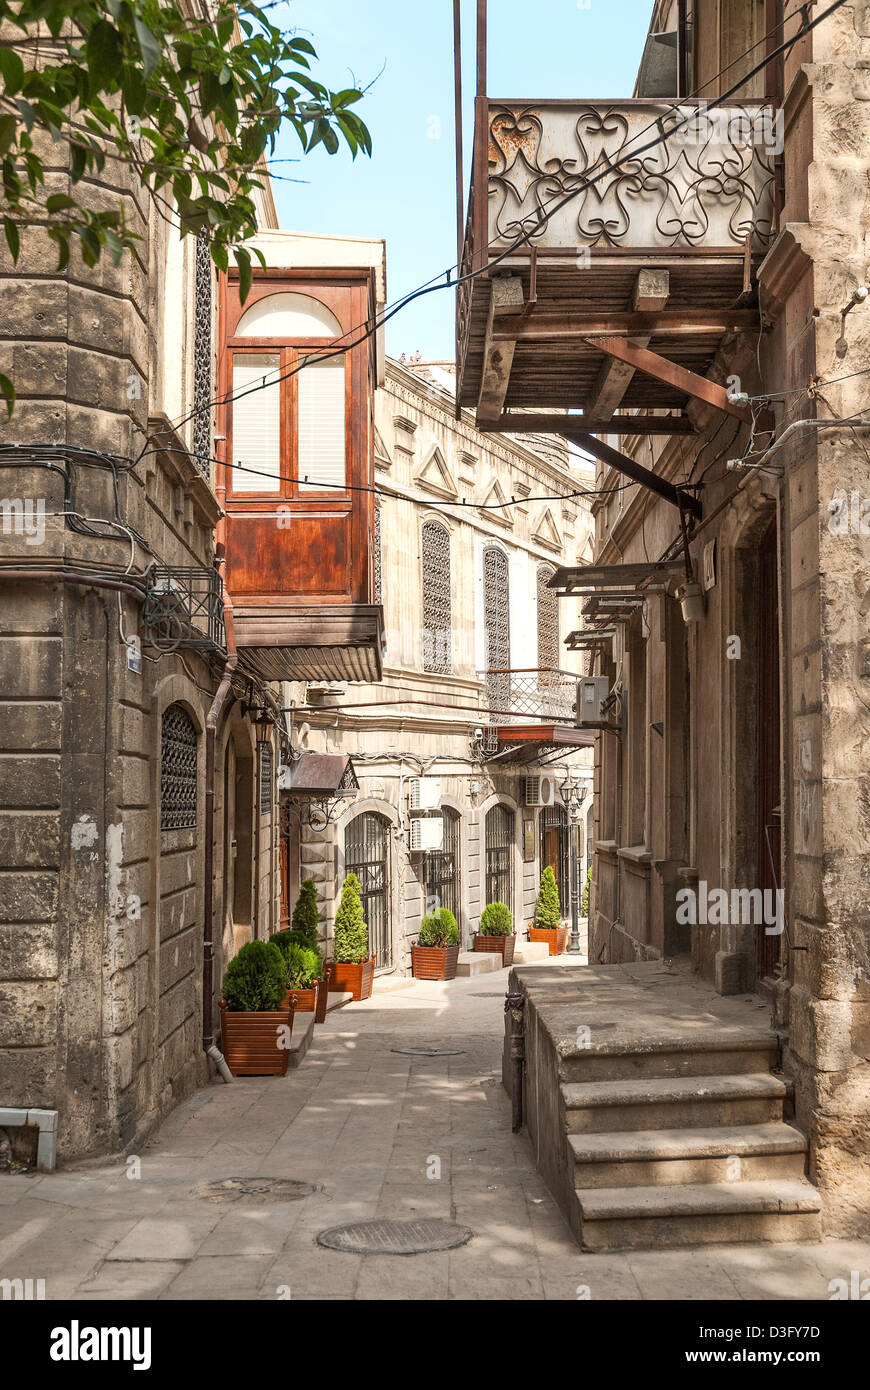 architecture in baku azerbaijan old town street - Stock Image